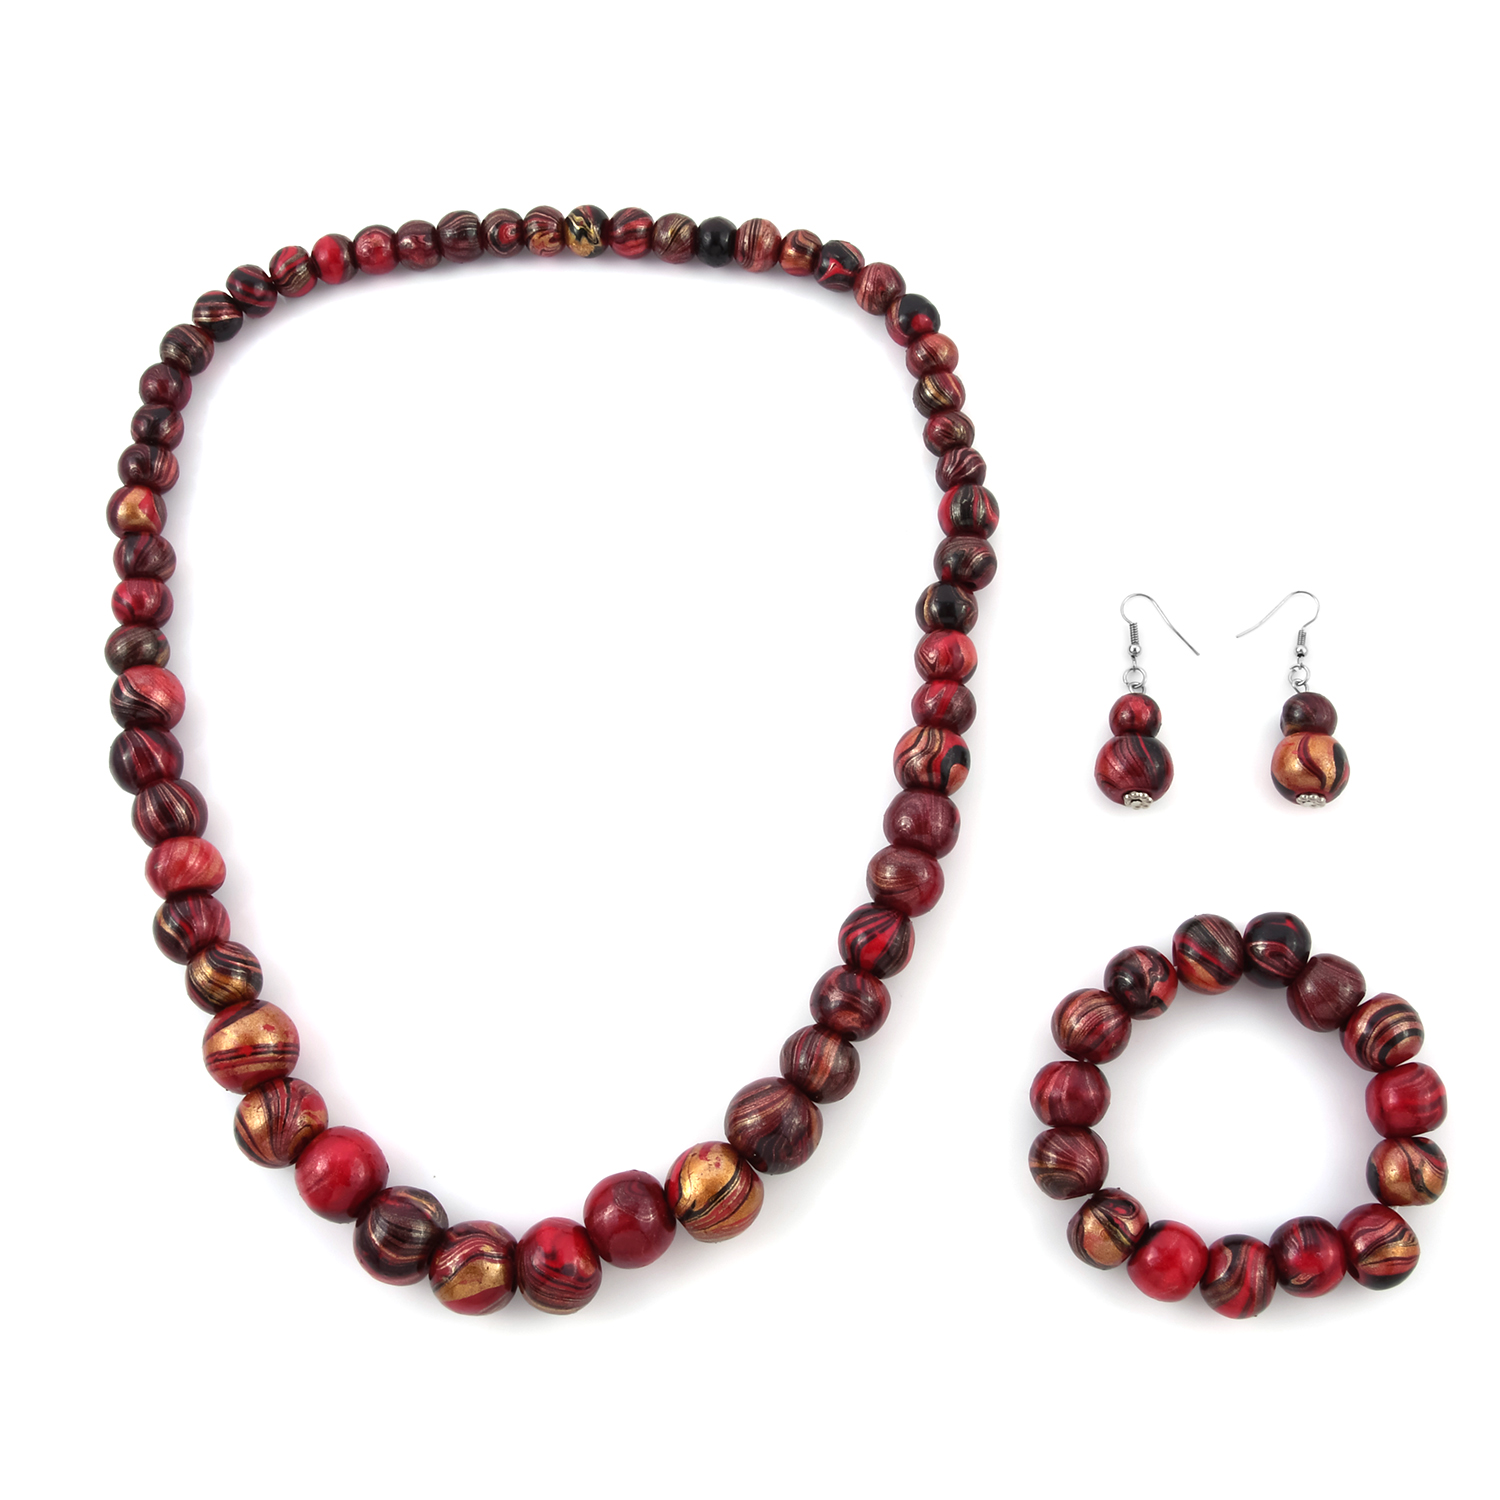 Fuchsia Wooden Beads Silvertone Necklace (28 in), Bracelet (Stretchable) and Earrings